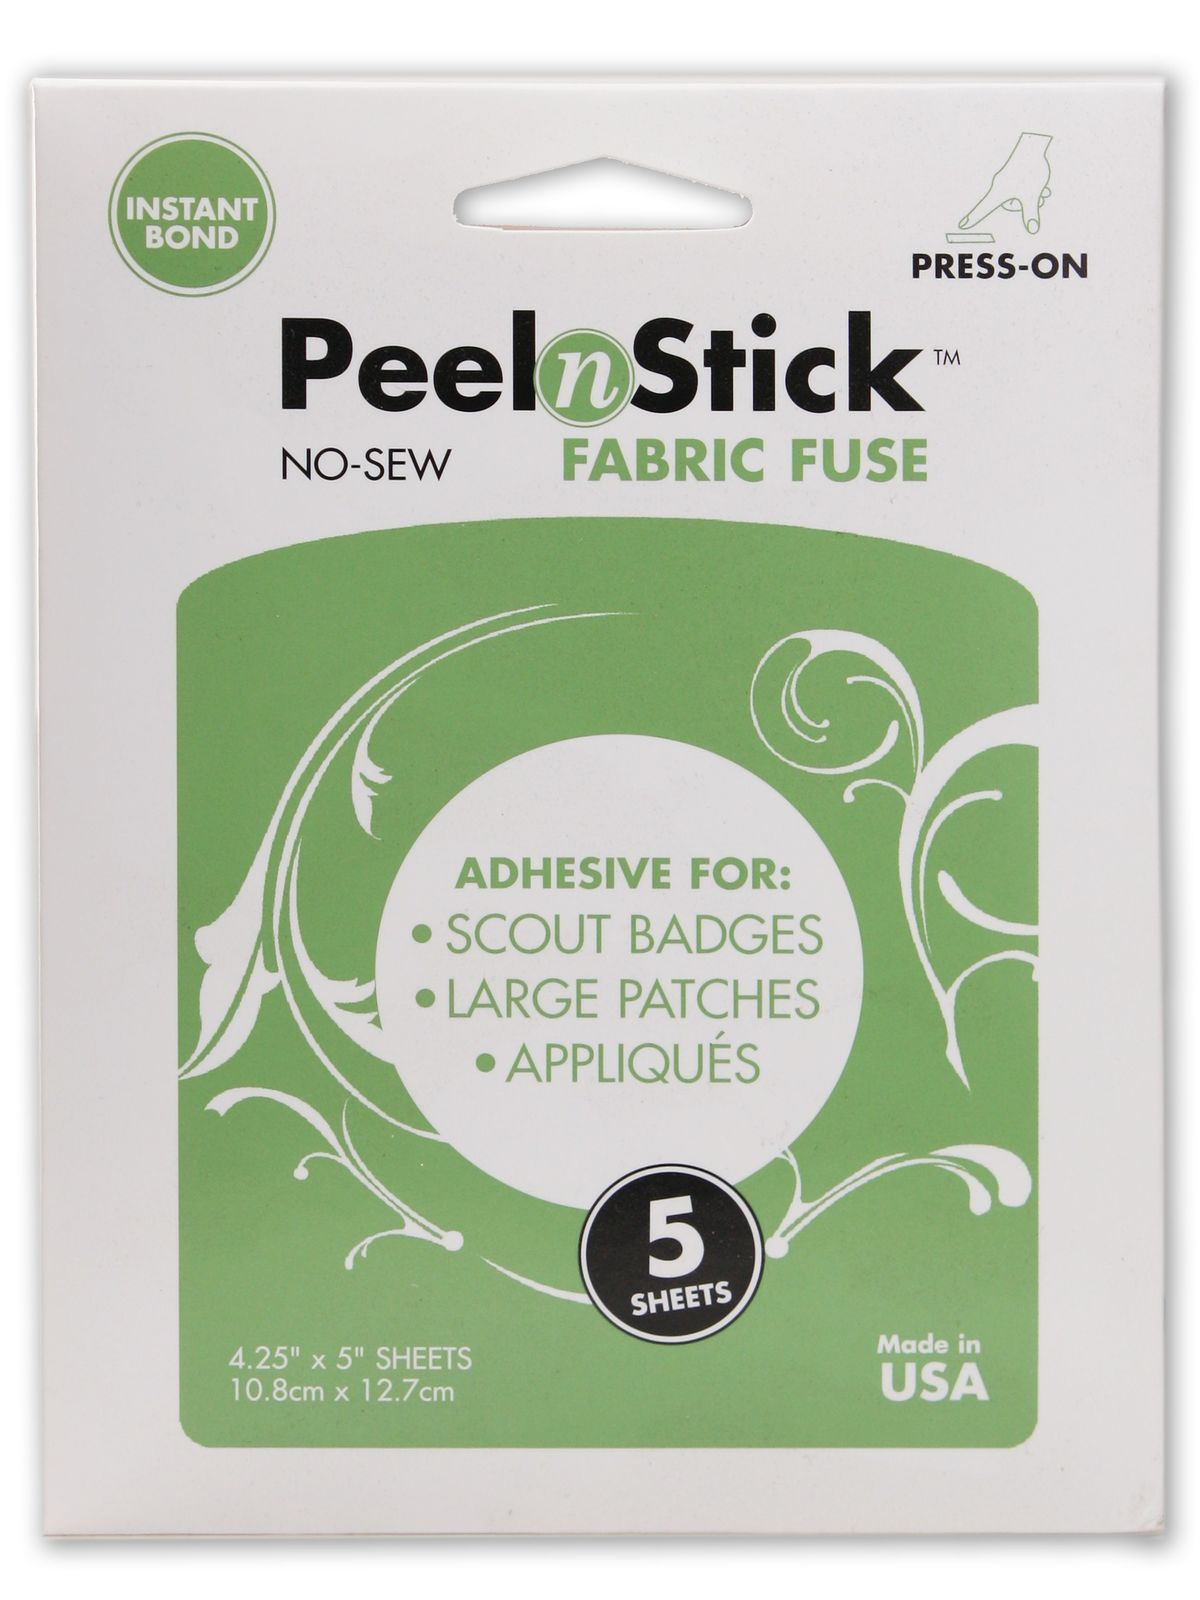 Fabric Fuse Adhesive pack of 5 sheets